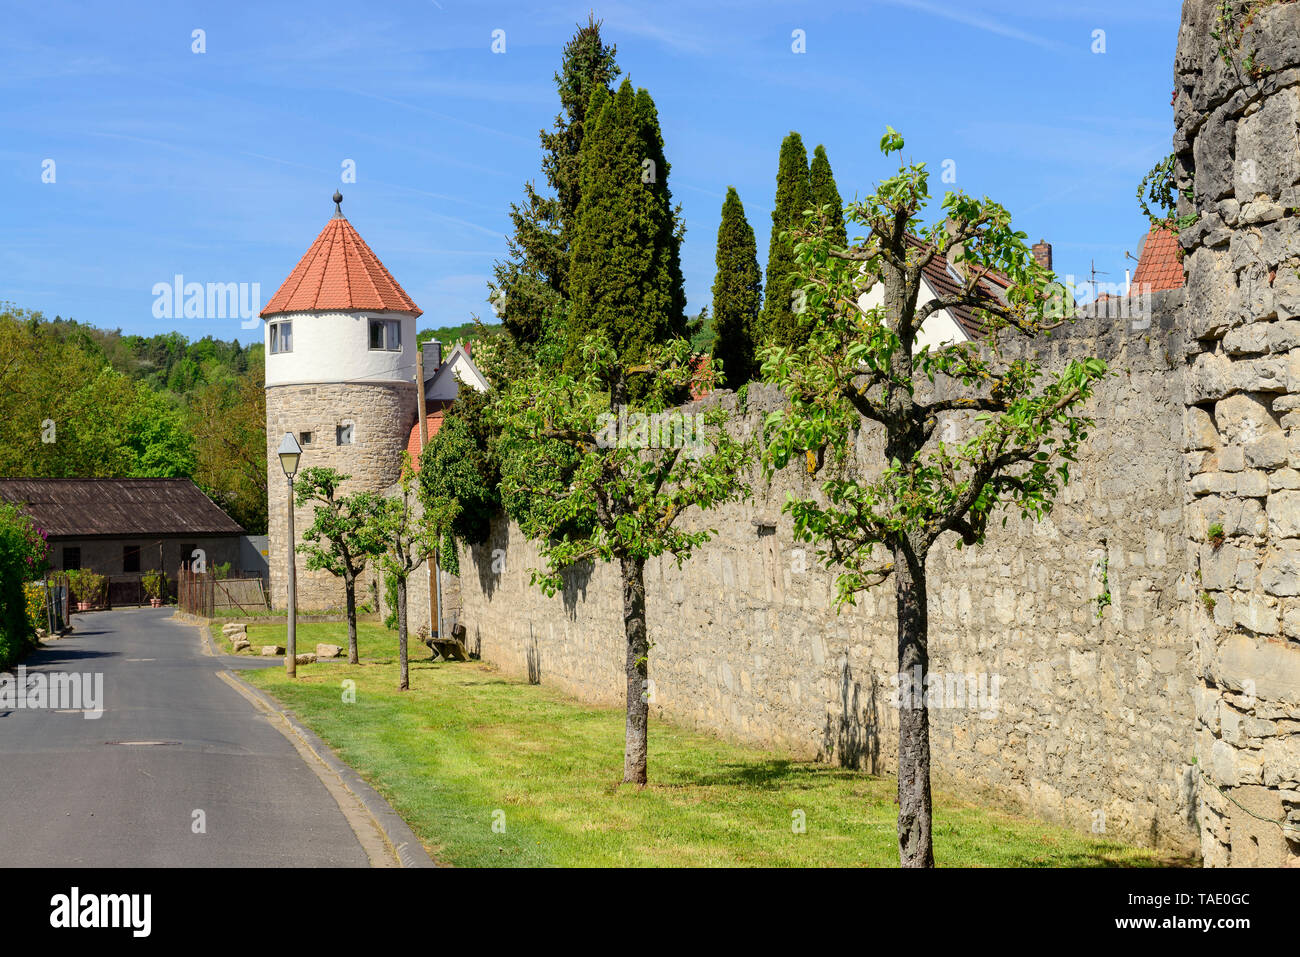 Germany, Bavaria, Franconia, Lower Franconia, Eibelstadt, city wall with tower - Stock Image